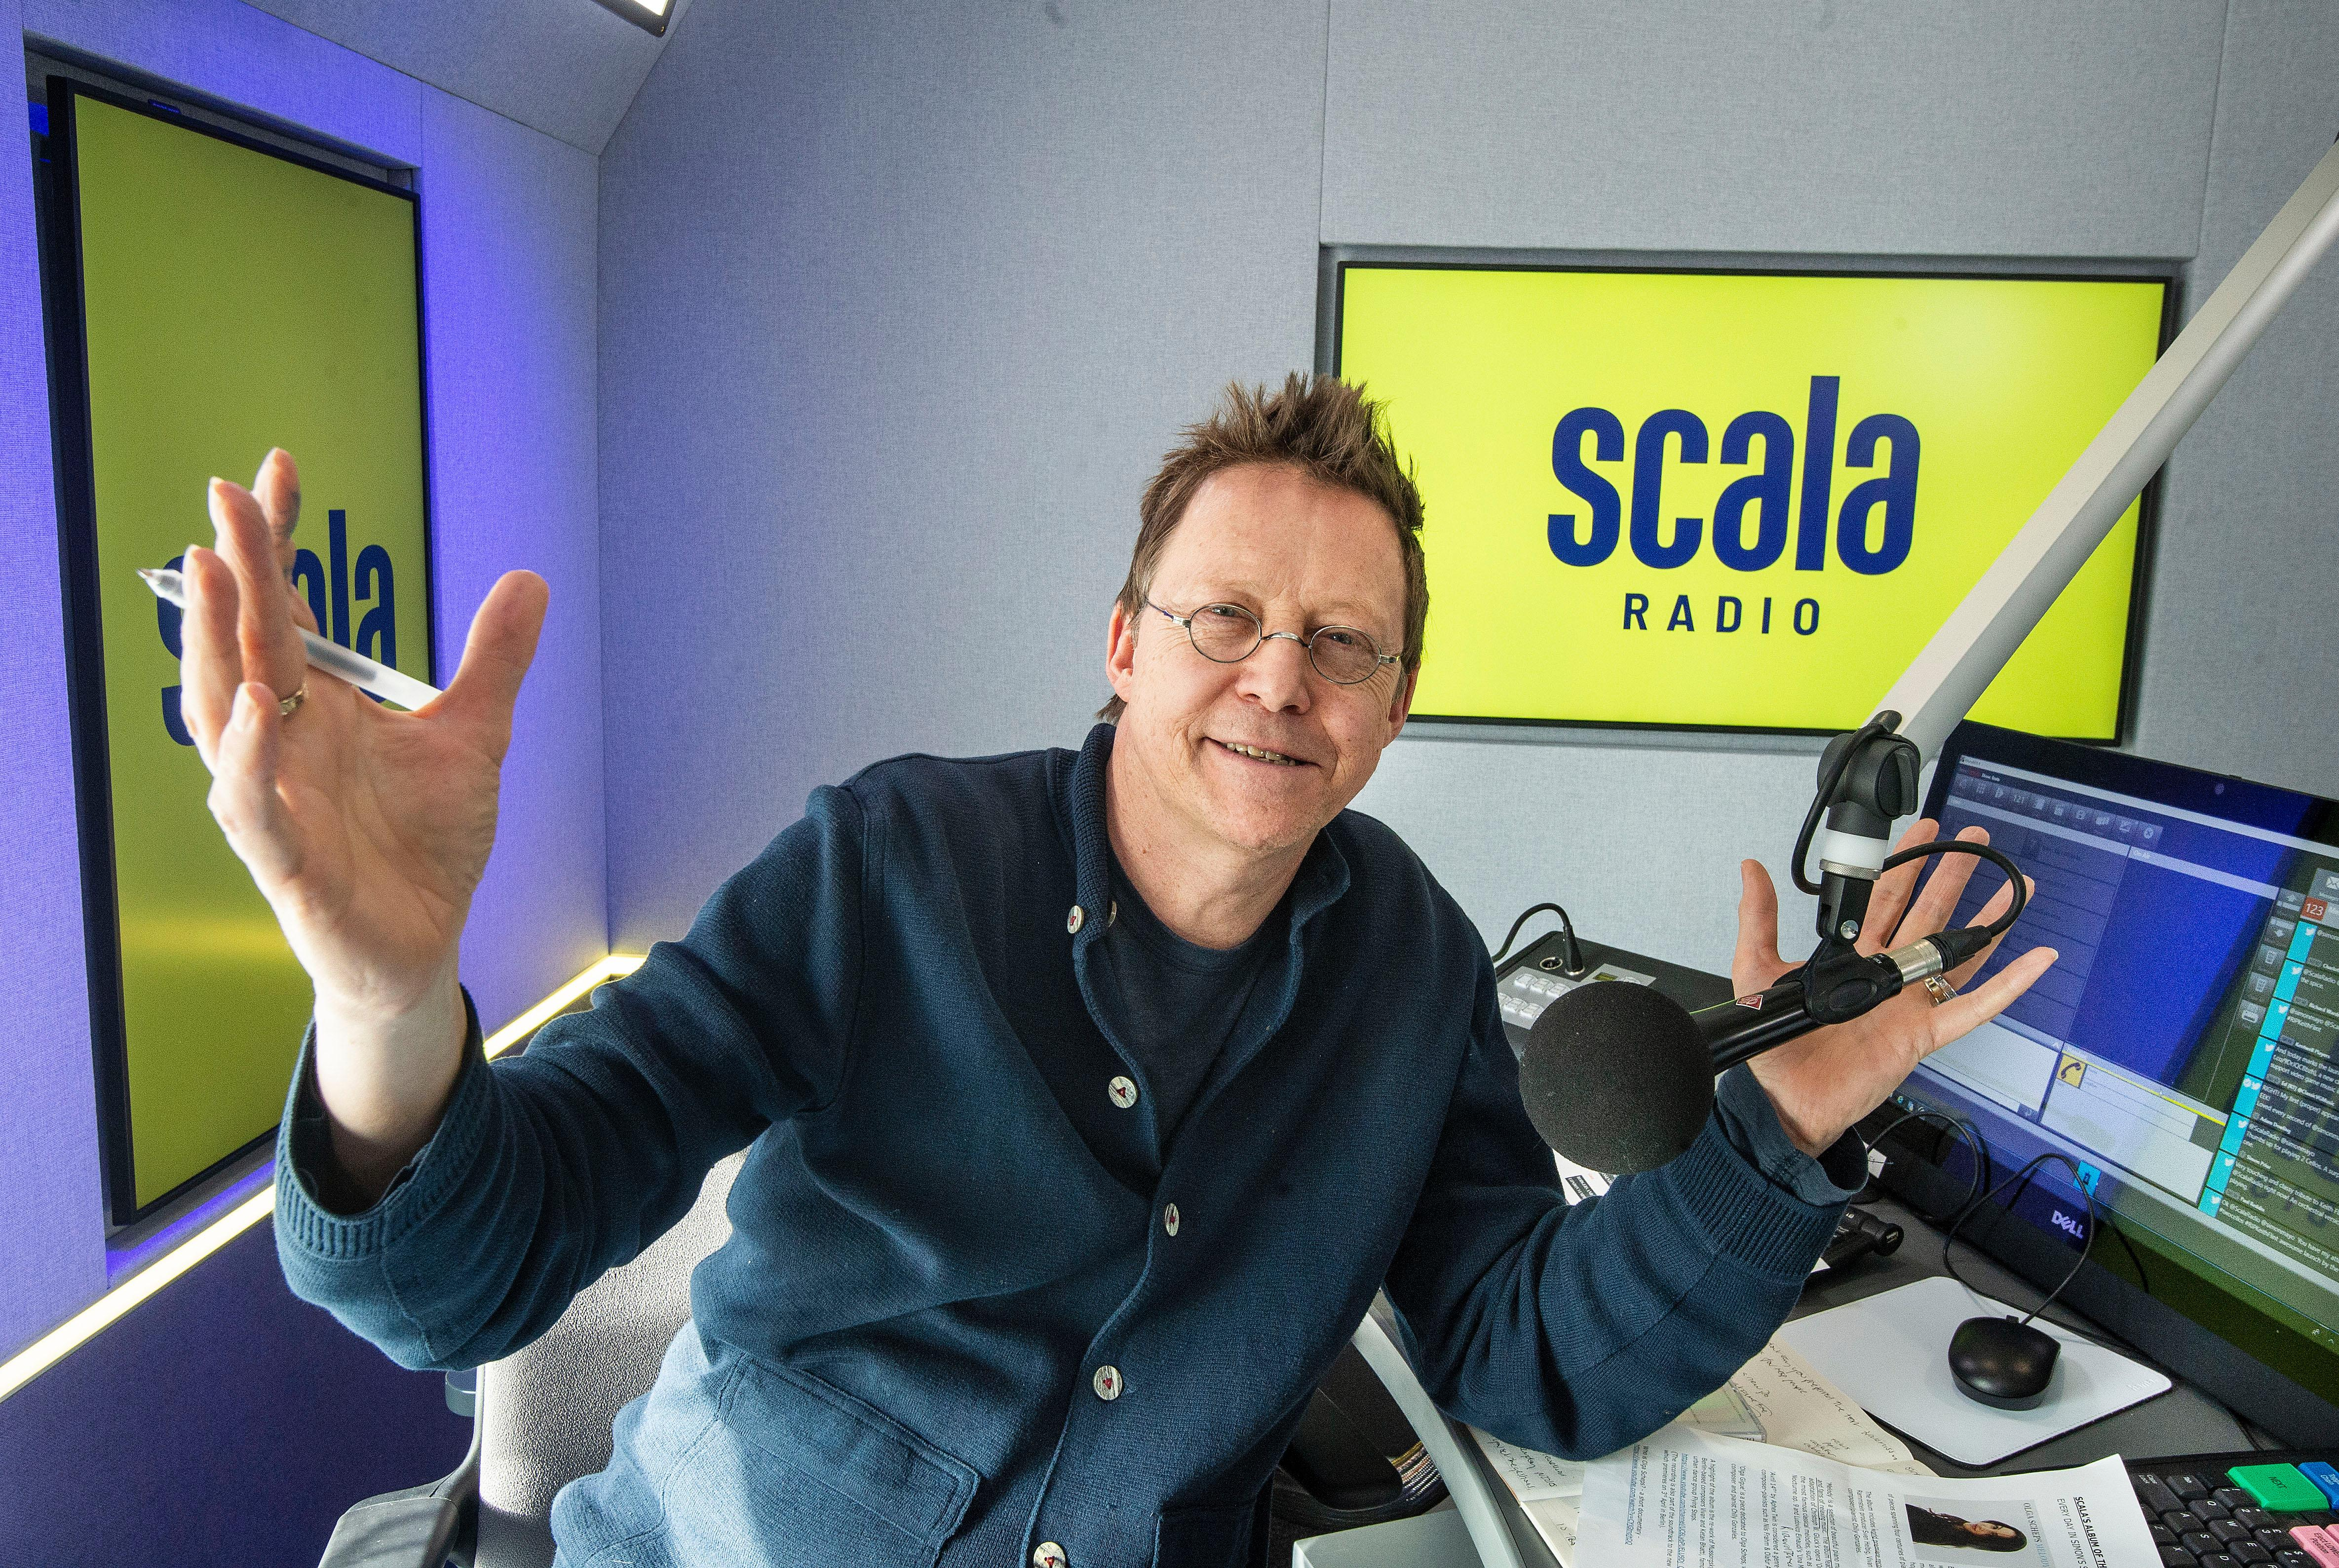 The week in radio and podcasts: Scala Radio; Don't Log Off; Moving Pictures – review